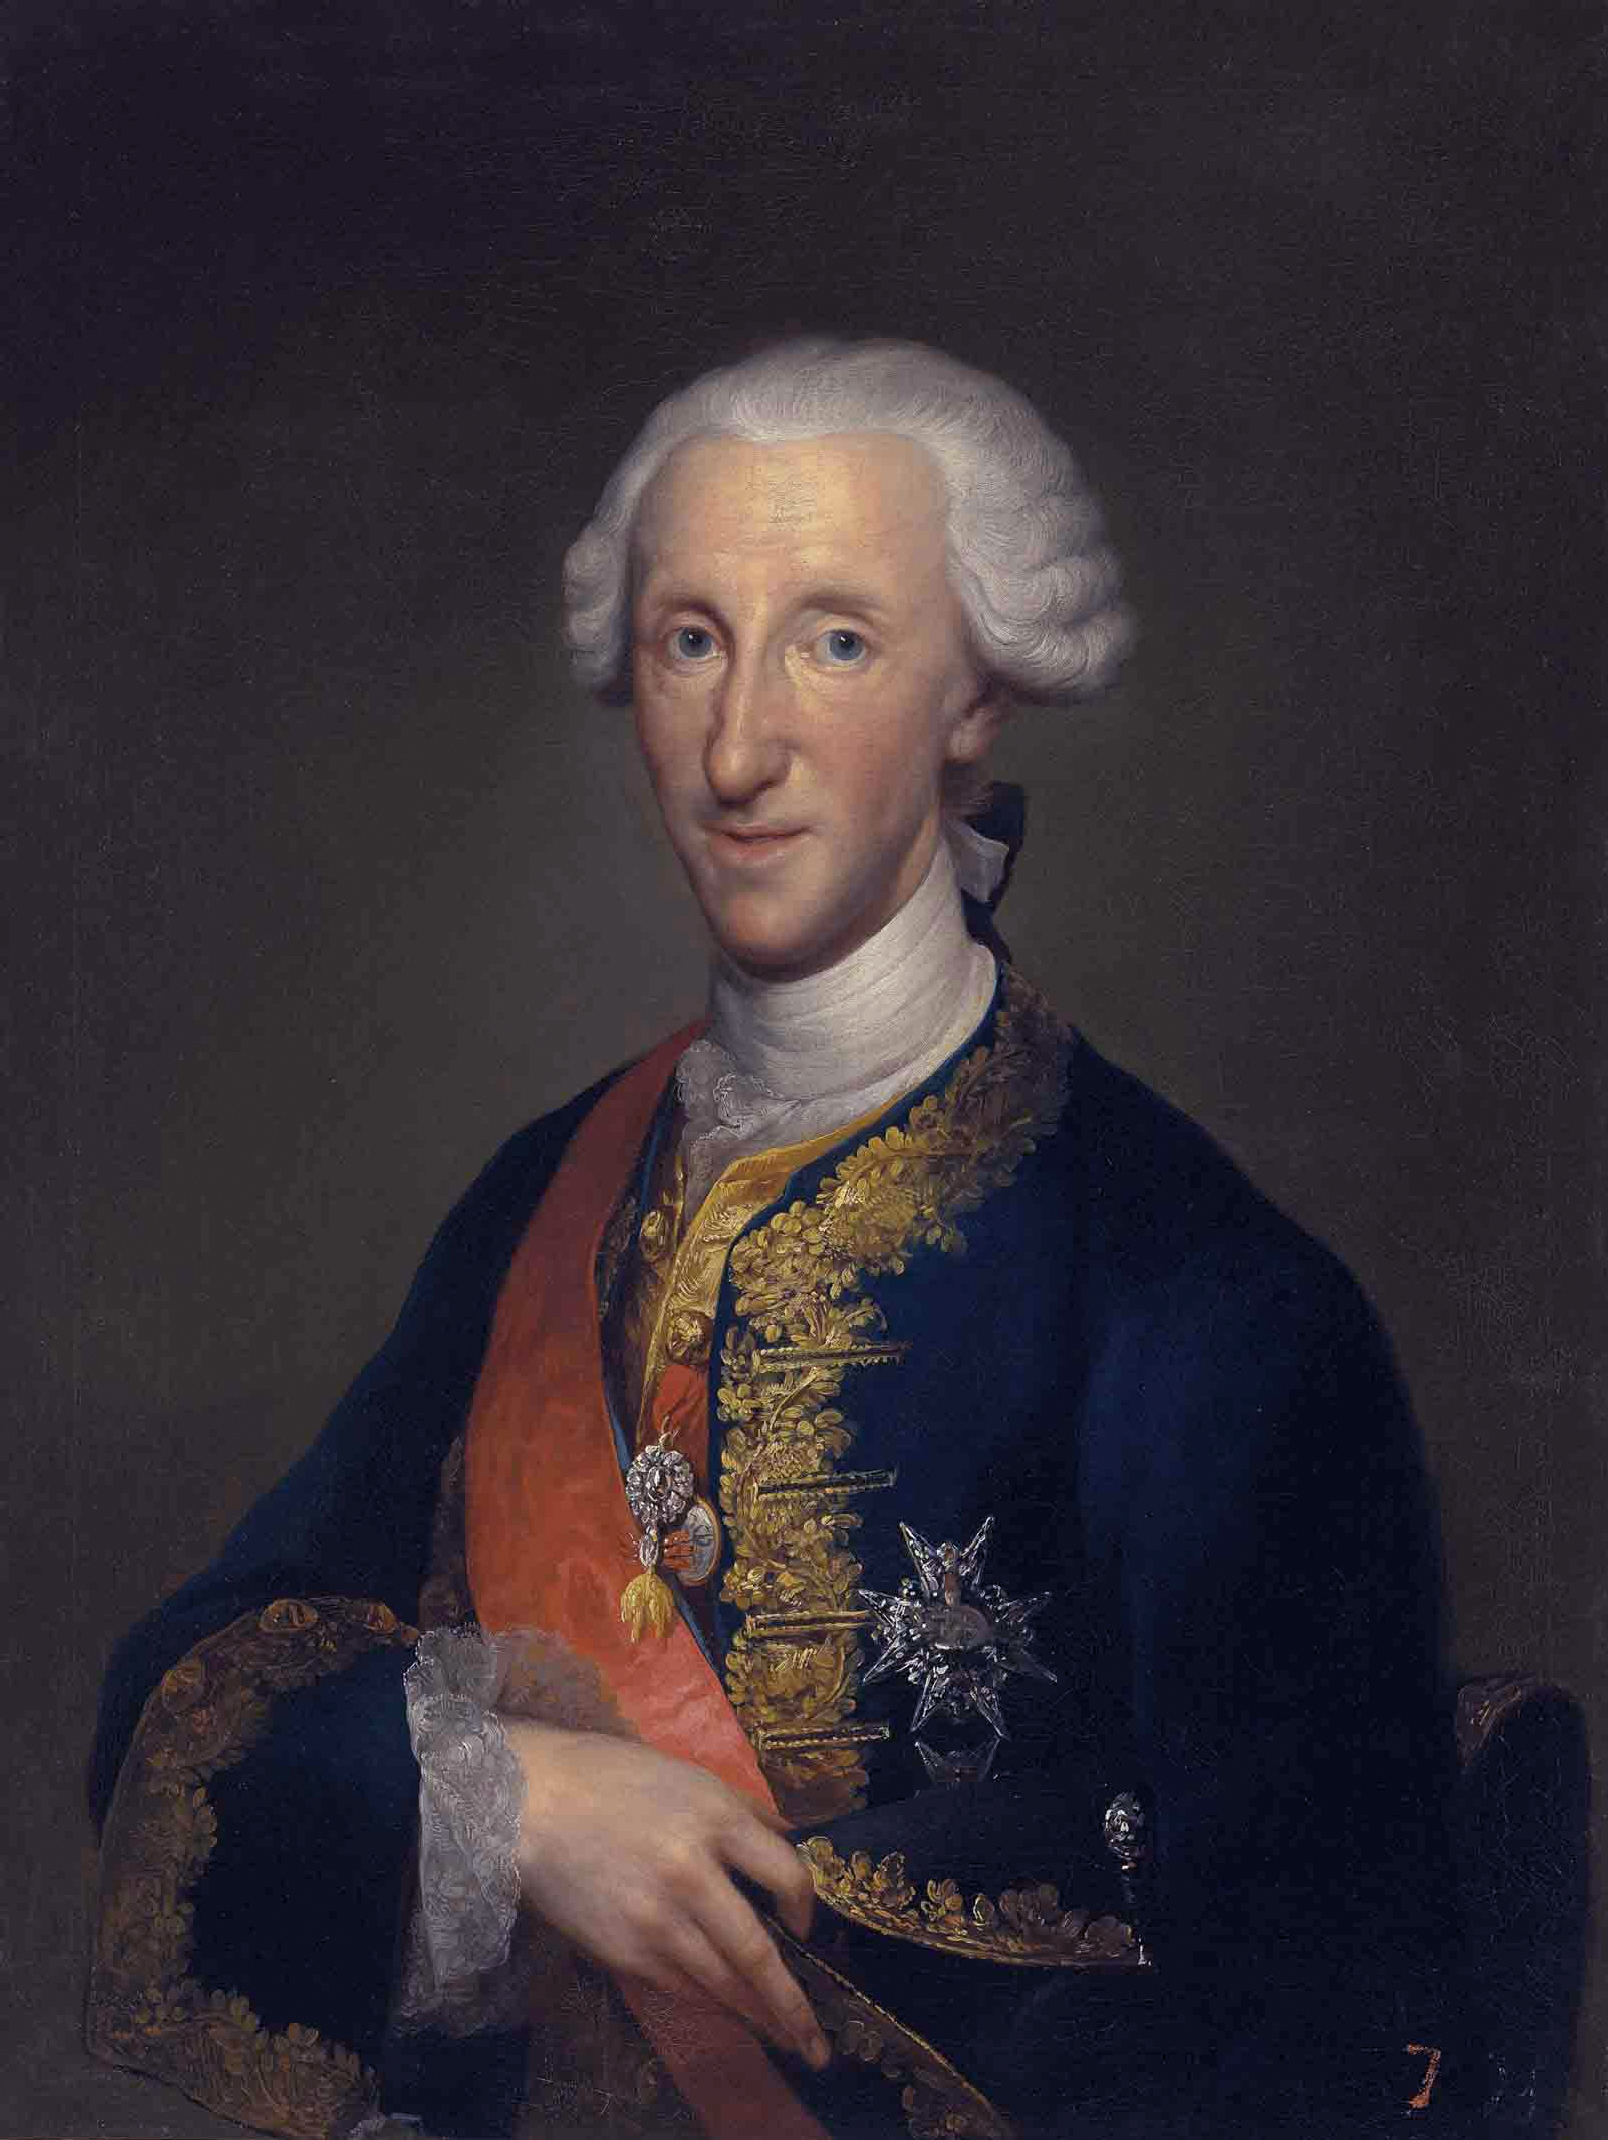 Don Luis de Borbón, Infante of Spain (1727-1785), in court dress, with the insignia of the Orders of the Golden Fleece, St. Januarius and Saint-Esprit